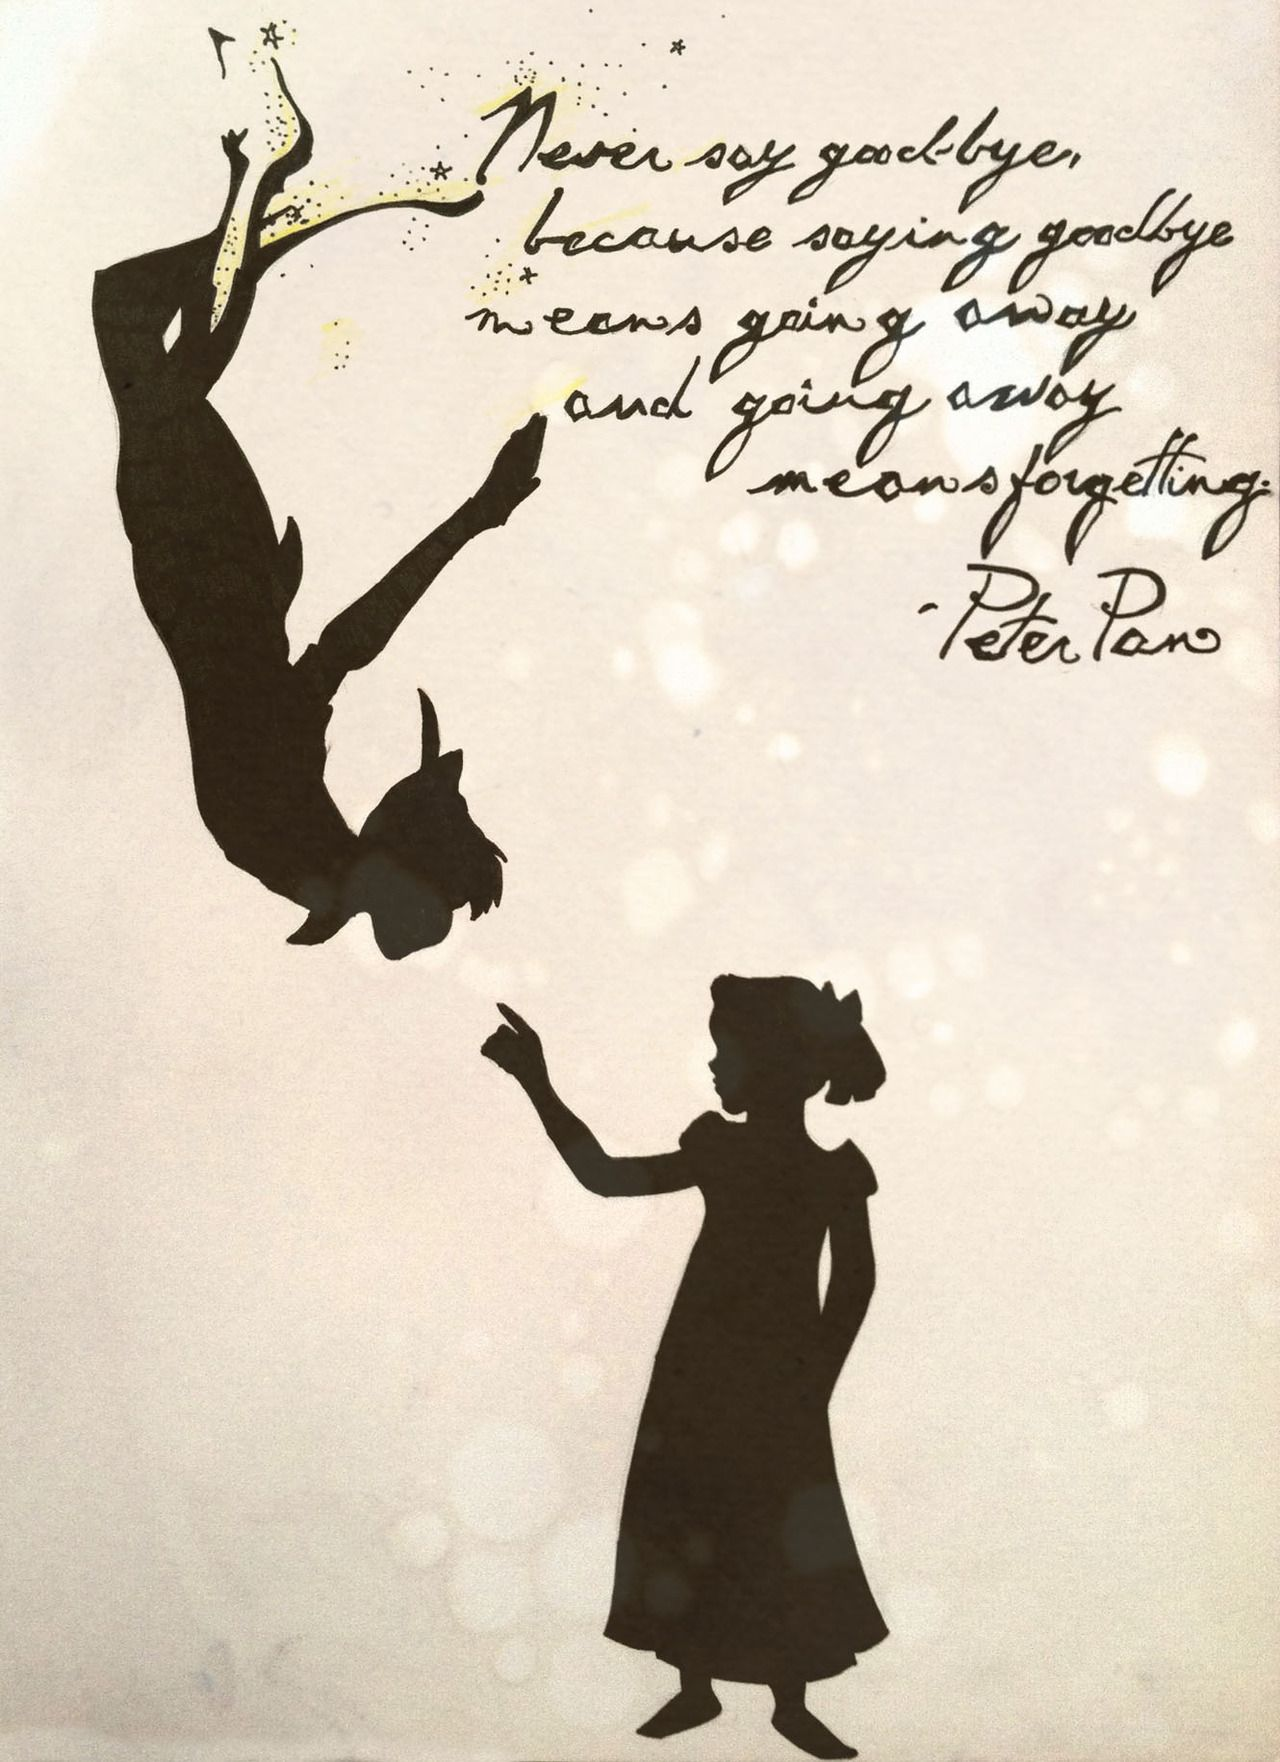 Awesome Never Say Goodbye, Because Saying Goodbye Means Going Away, And Going Away  Means Forgetting.  Peter Pan